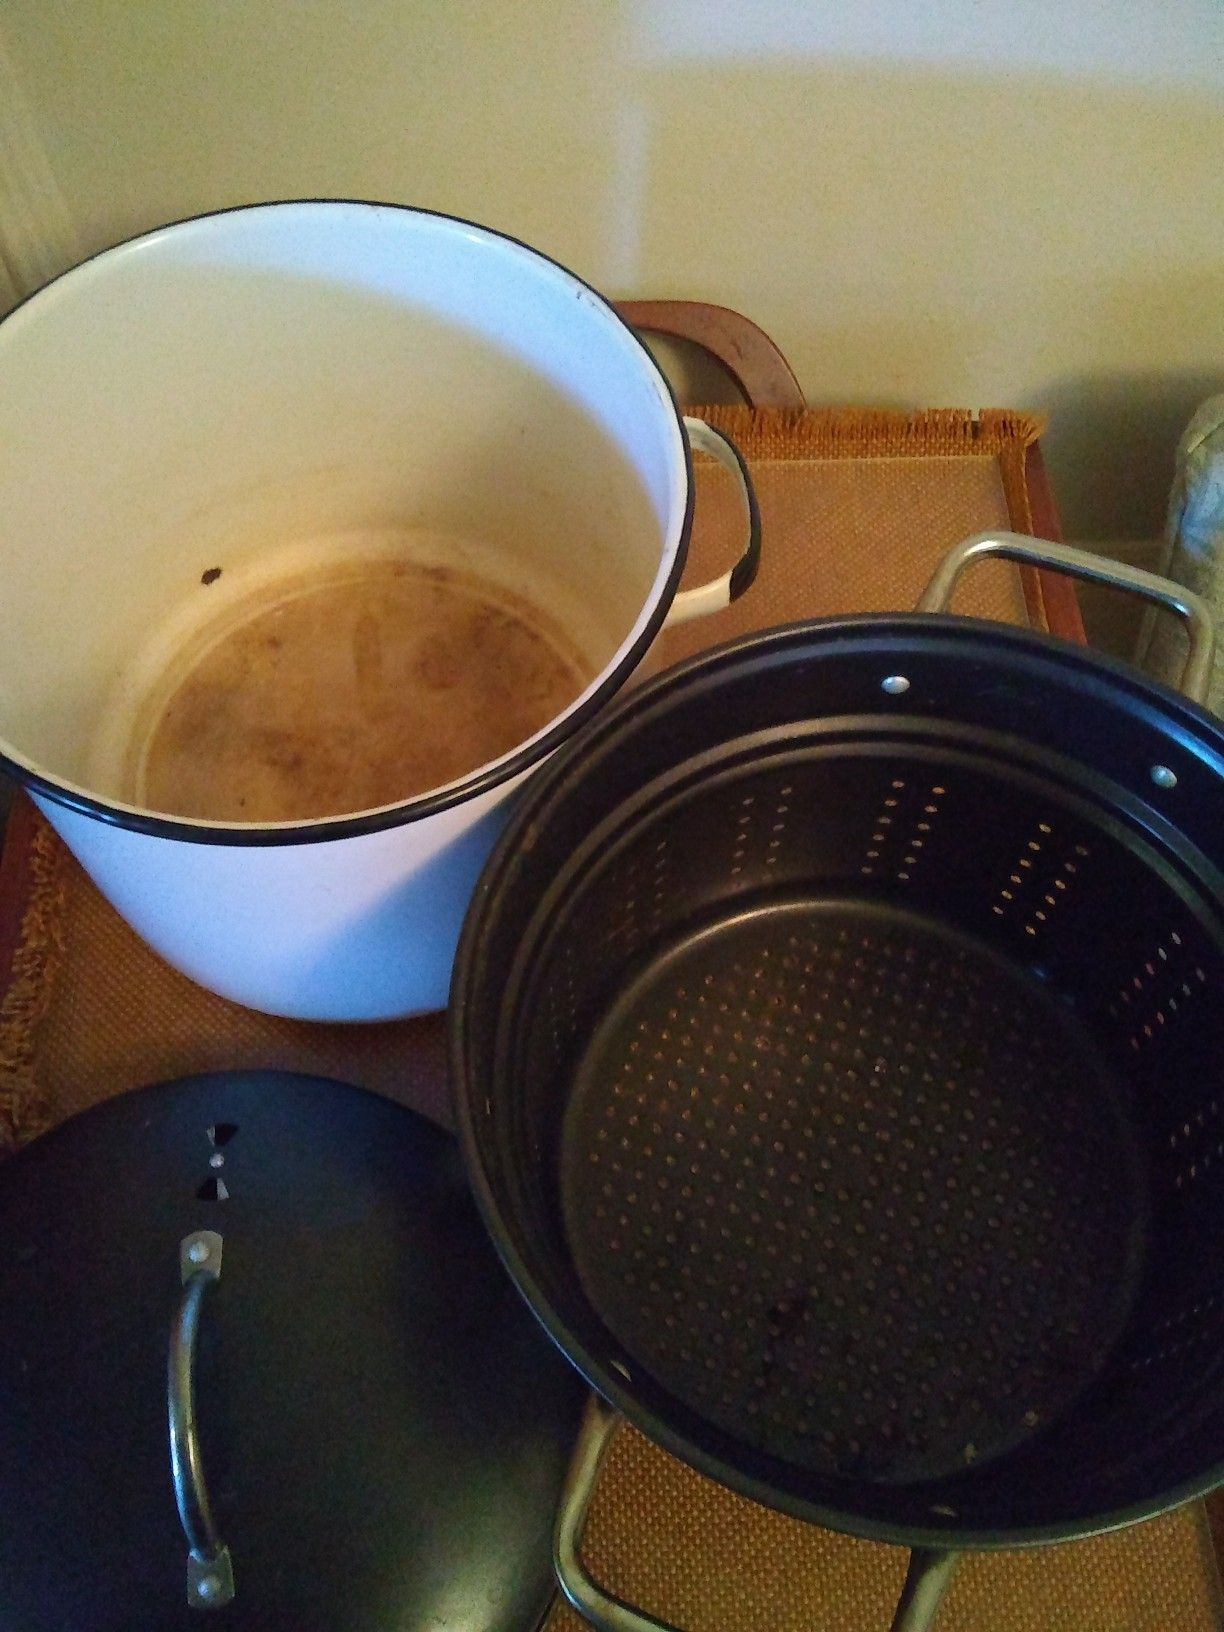 Stock pot and Food steamer both porcelain, see all pictures pickup Western/Devon ave Chicago